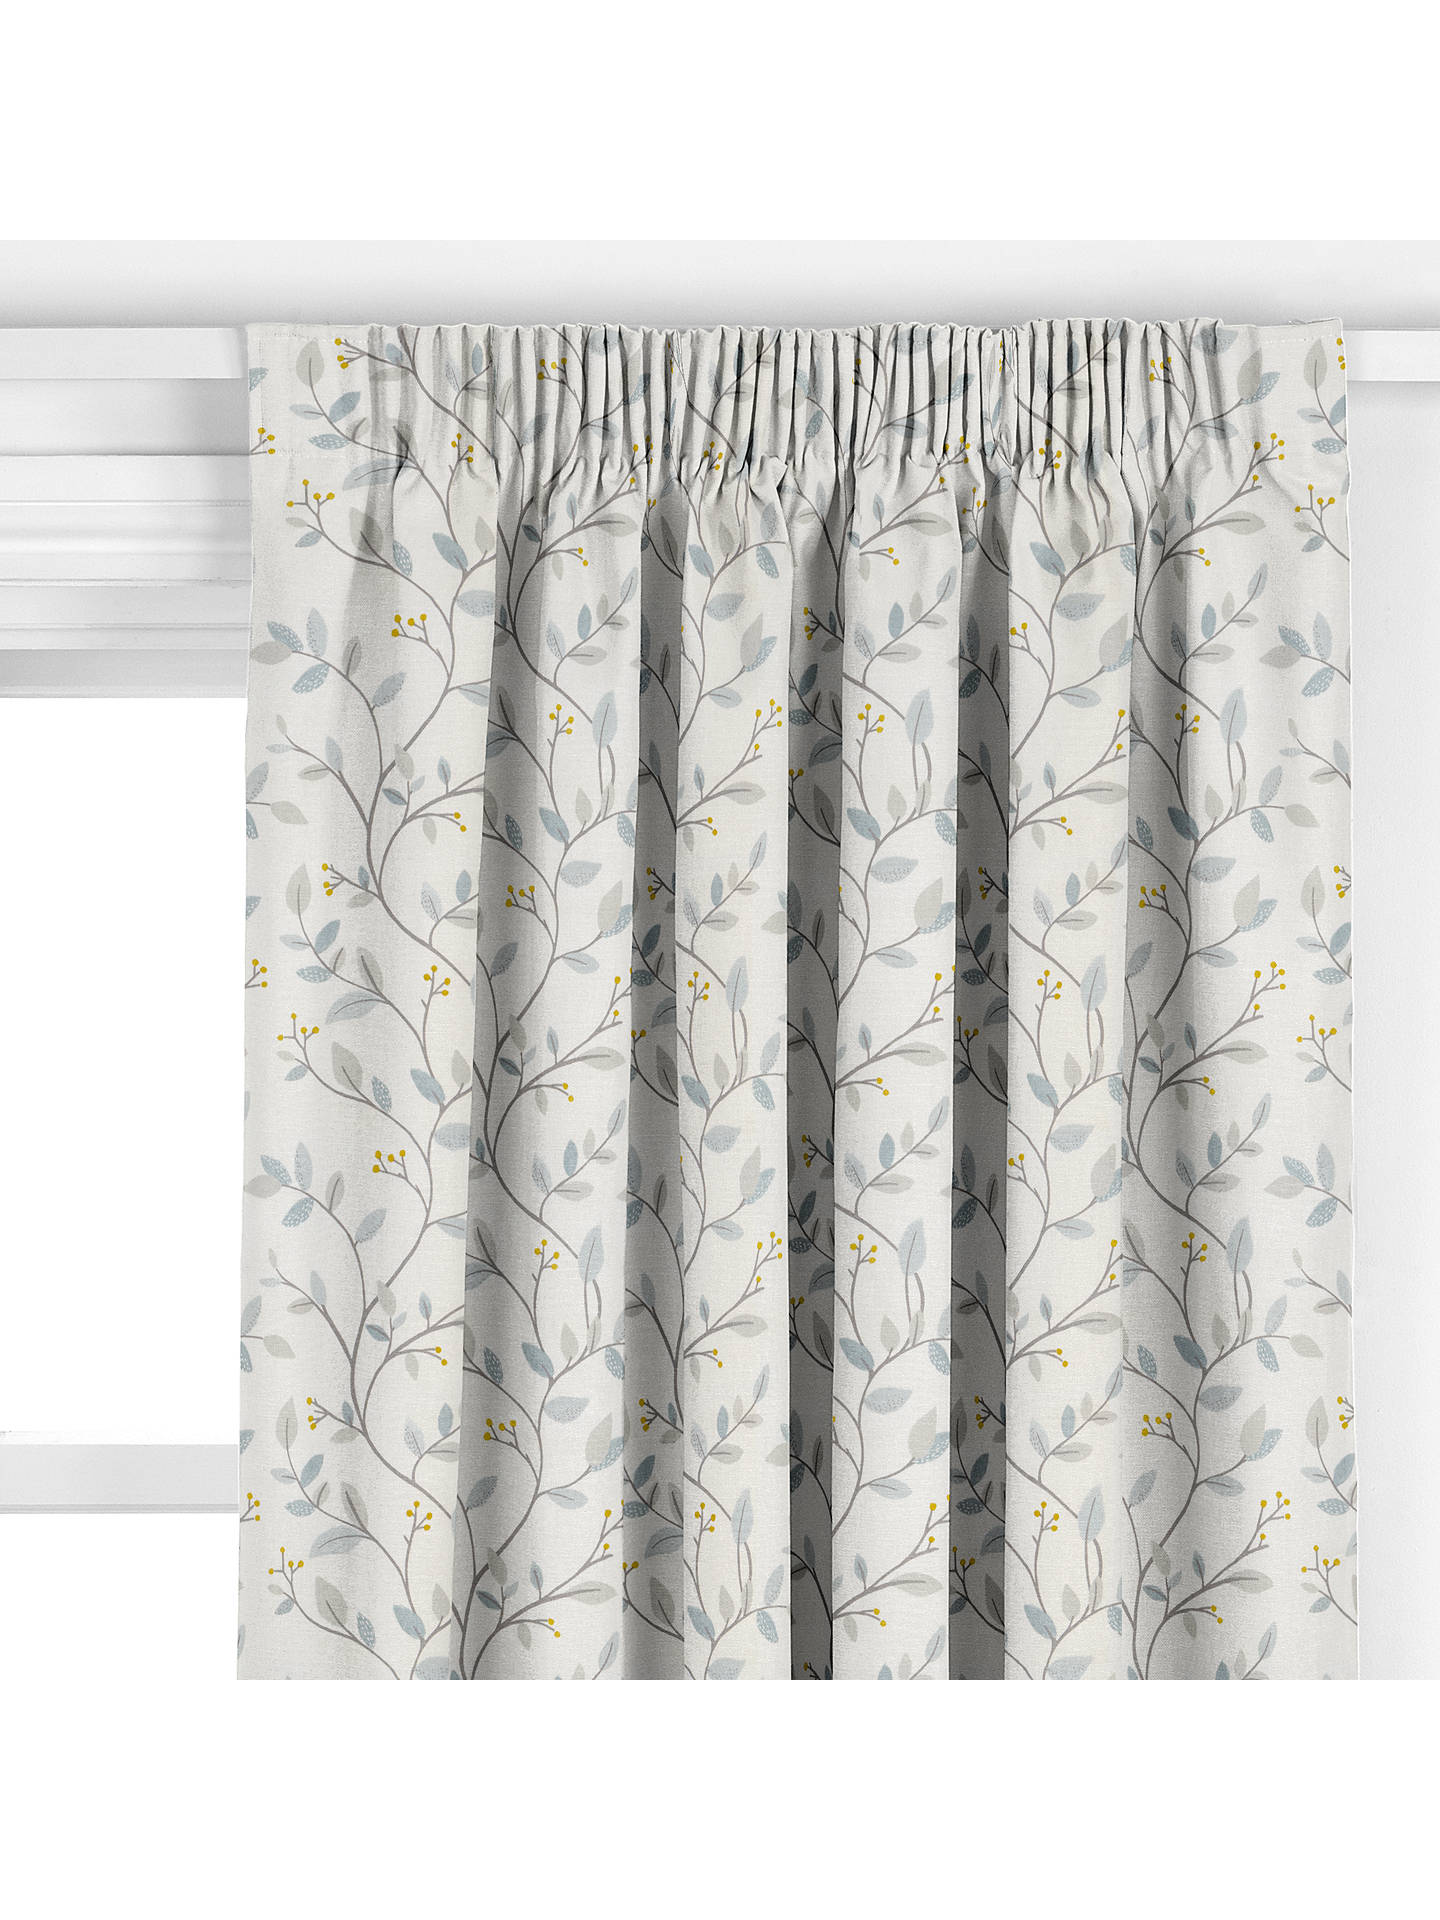 BuyJohn Lewis Partners Mia Curtain Mineral Online At Johnlewis